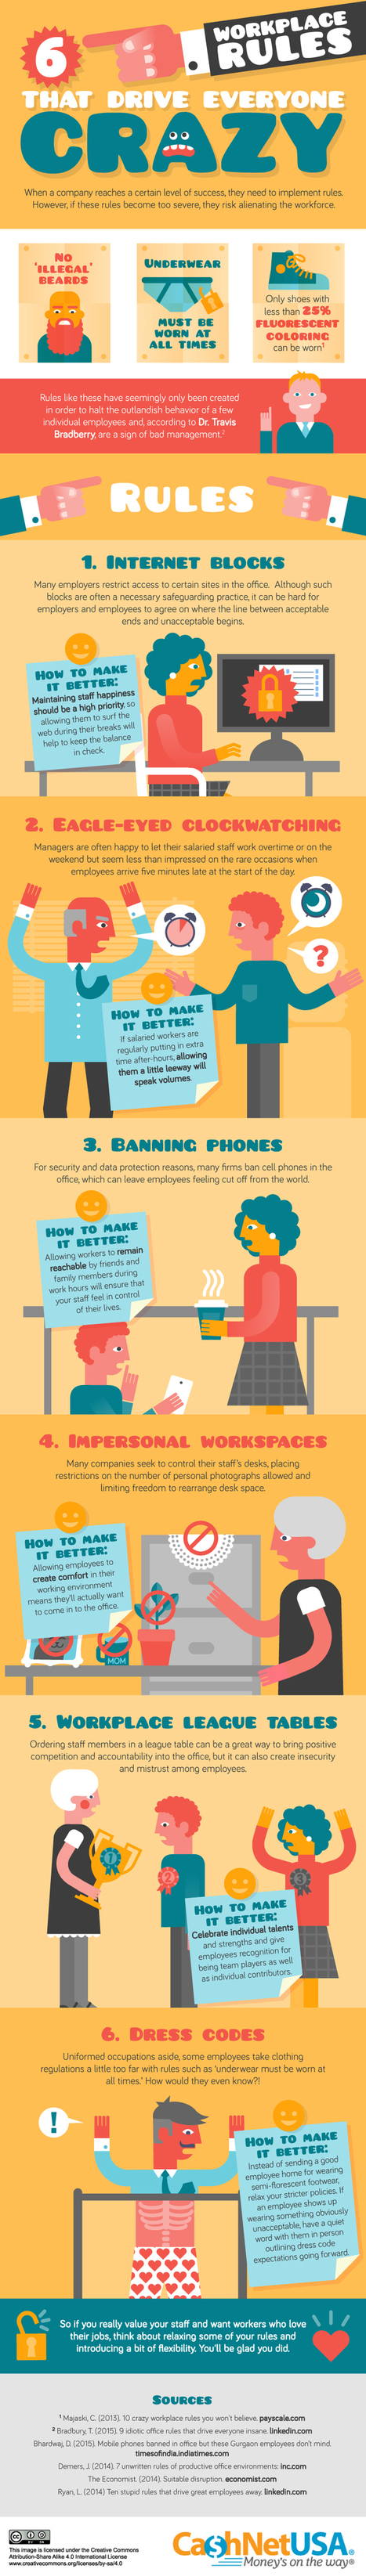 6 Workplace Rules that Drive Everyone Crazy [Infographic] | Daily Infographic | Managing people not cogs in a machine | Scoop.it